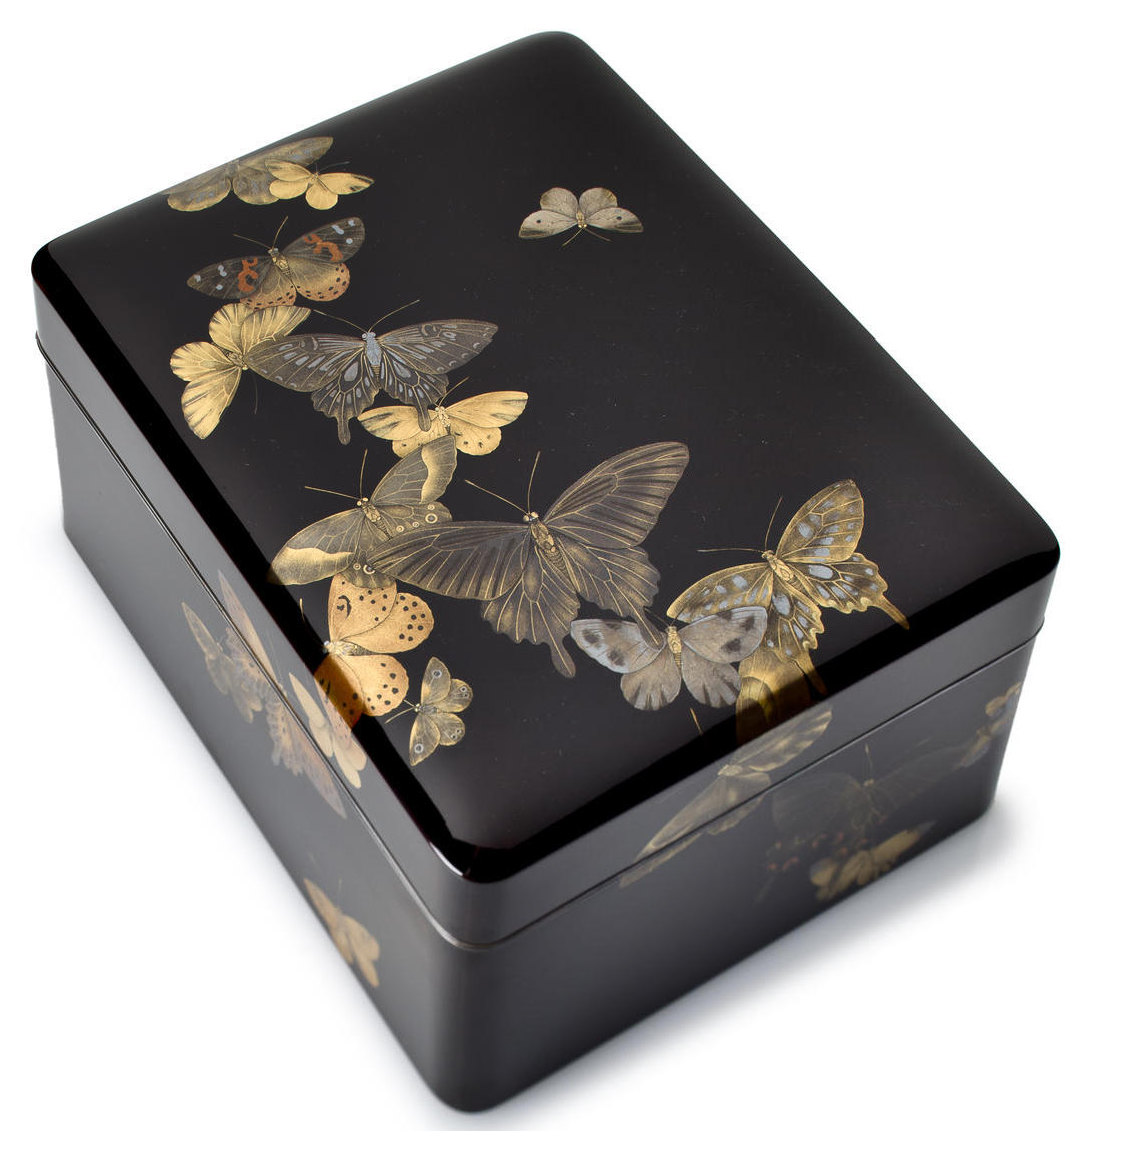 A lacquer cosmetic box (tebako) Attributed to Shirayama Shosai, (1853-1923), 19th century The rectangular box with a slightly domed cover and designed with a variety of butterflies rendered in iro-e togidashi against a glossy roiro ground, the interior hirame on a roiro-nuri ground, silver rims With a wood storage box with a paper label on the exterior inscribed Maki-e cho tsukushi mon go tebako den Shosai saku (Lacquer cosmetic box with butterfly design, attributed to Shosai)